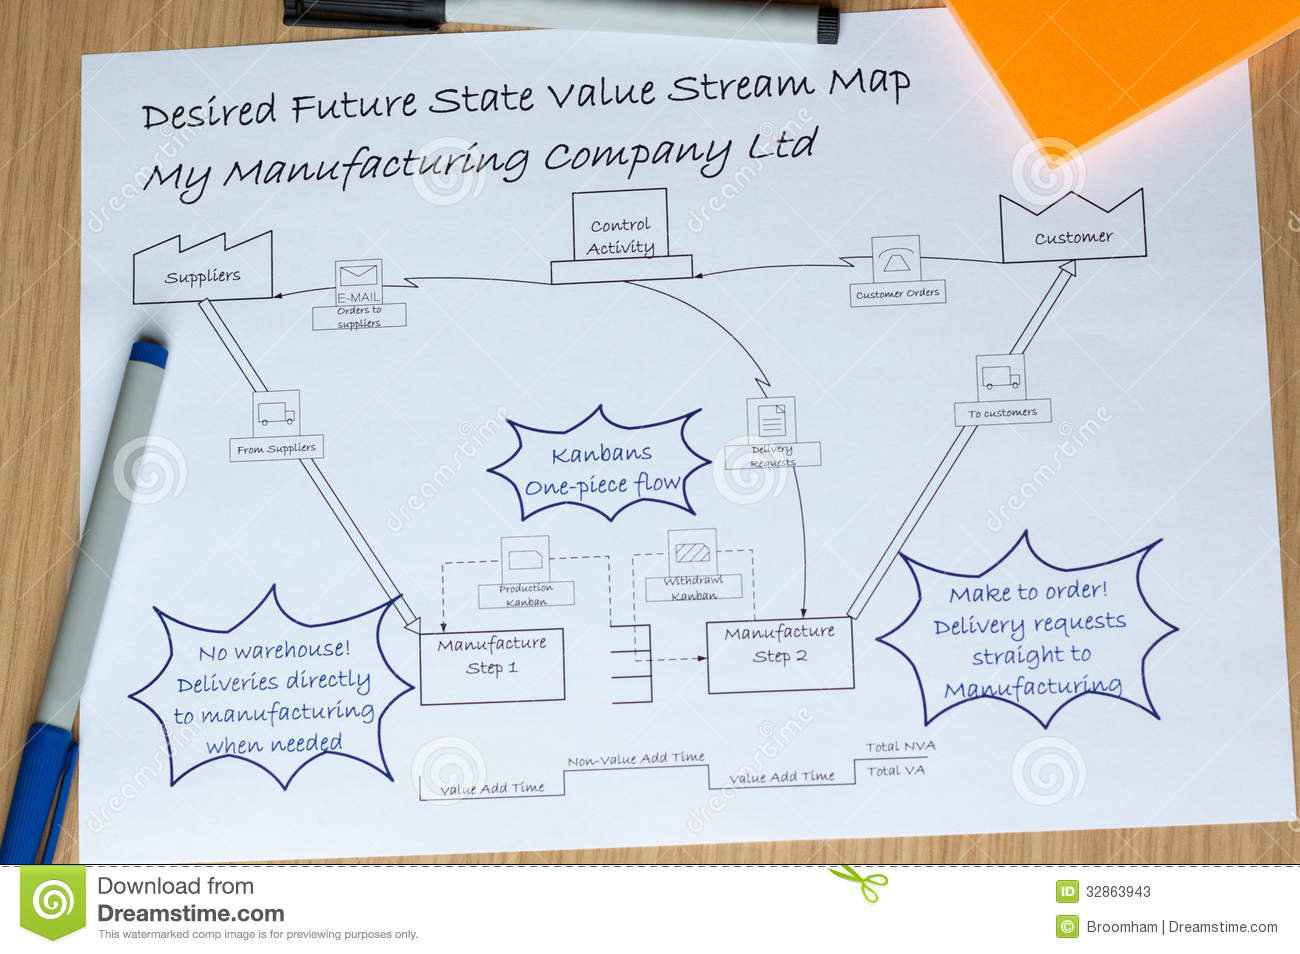 desired future vsm value stream map with kaizen improvements stock image